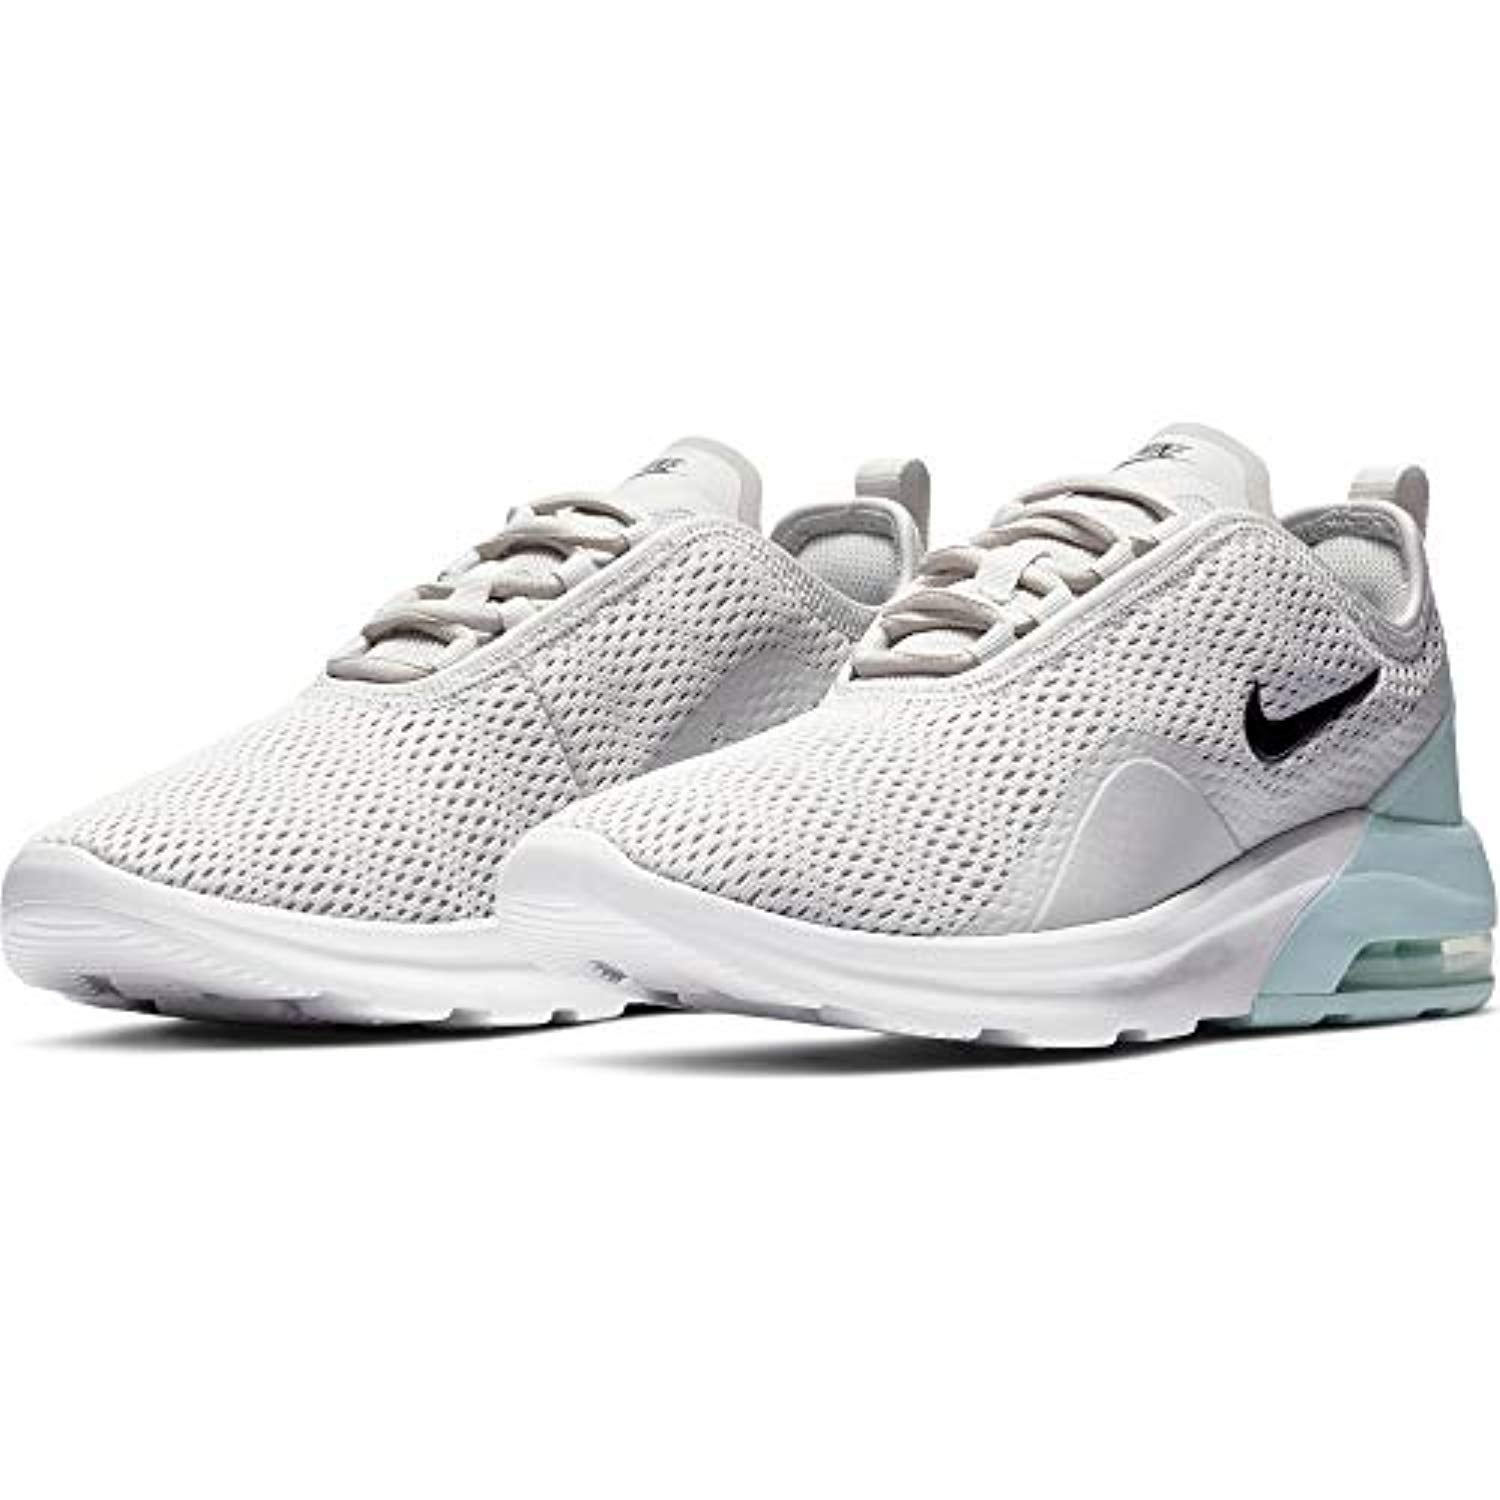 Nike Women's Shoes | Find Great Shoes Deals Shopping at